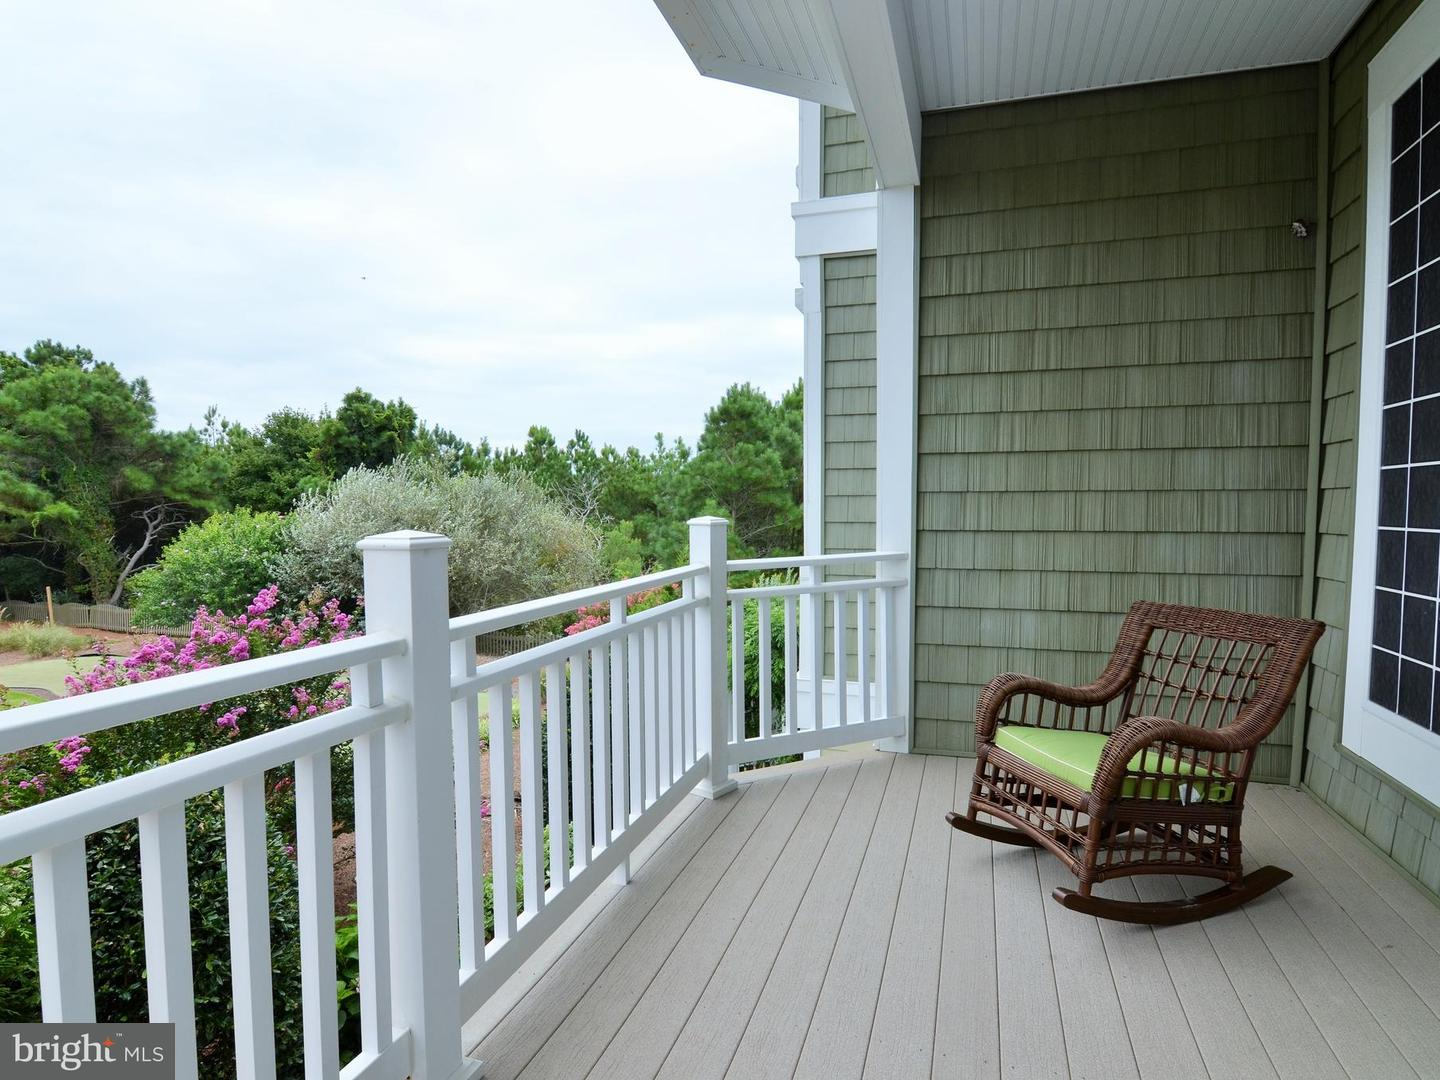 1002293530-300500807585-2018-09-25-15-08-25 31 Hall Ave | Rehoboth Beach, De Real Estate For Sale | MLS# 1002293530  - Suzanne Macnab